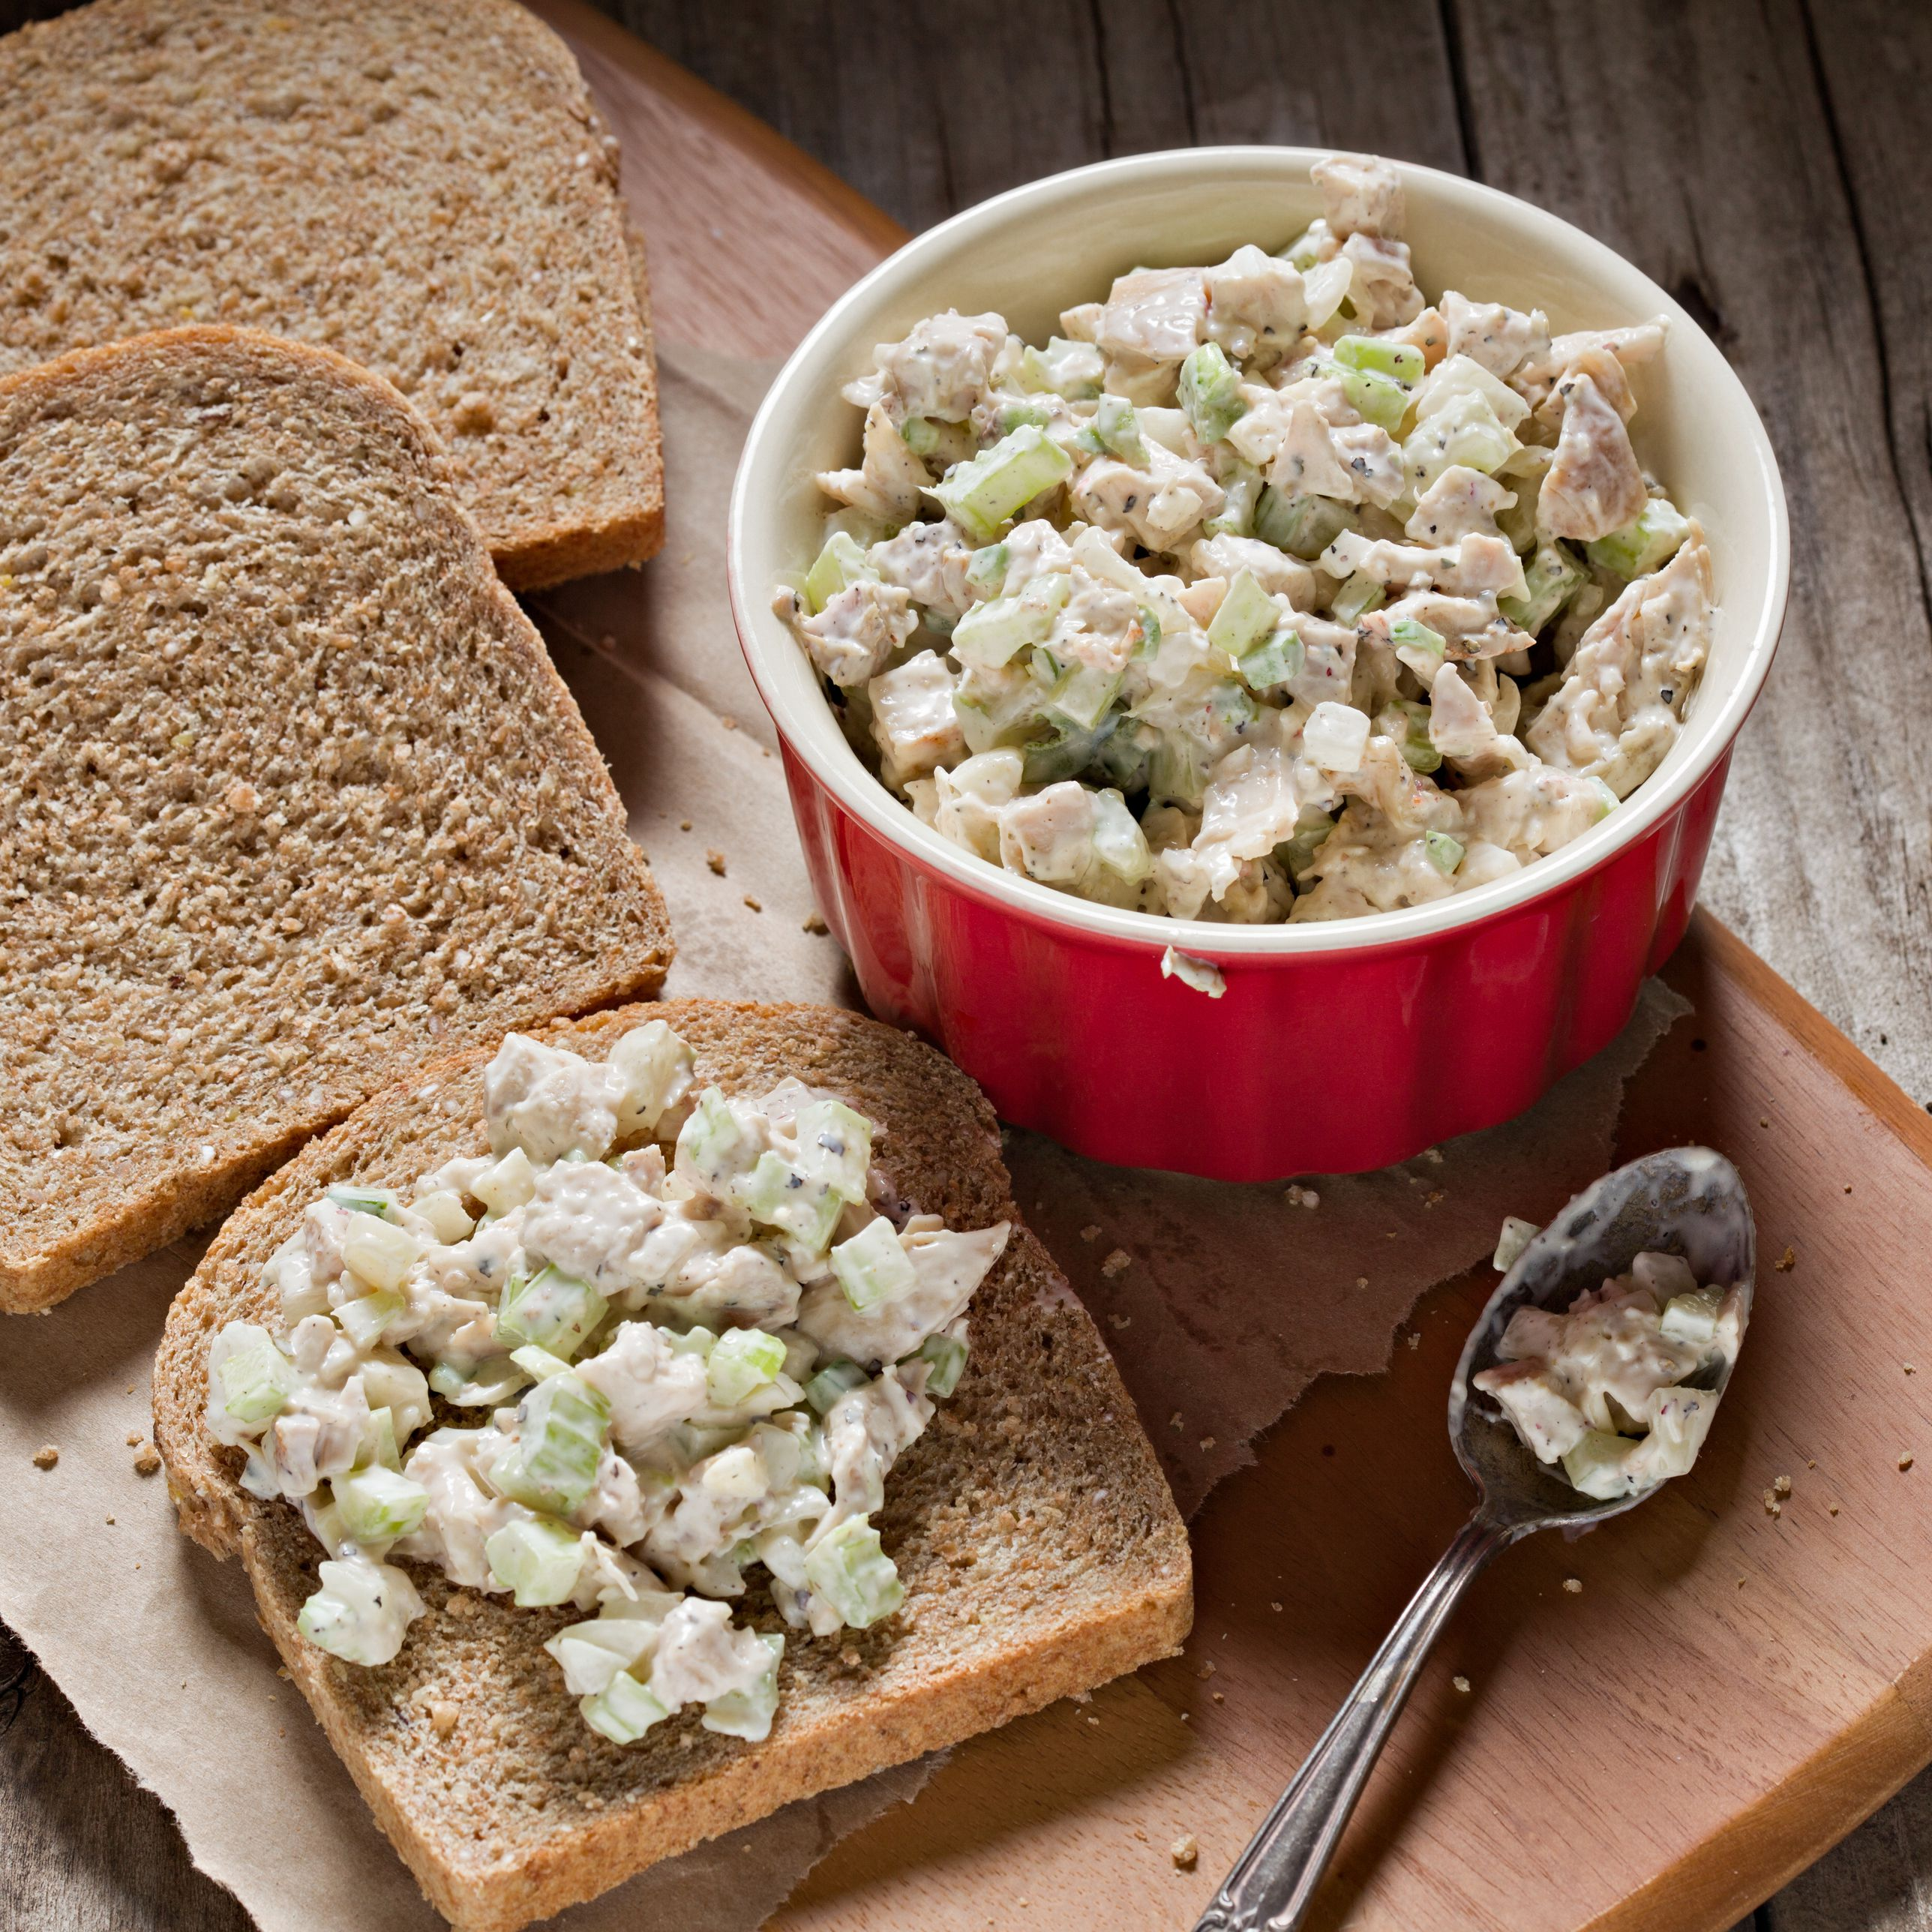 Canned Chicken Recipes for Quick and Easy Meals